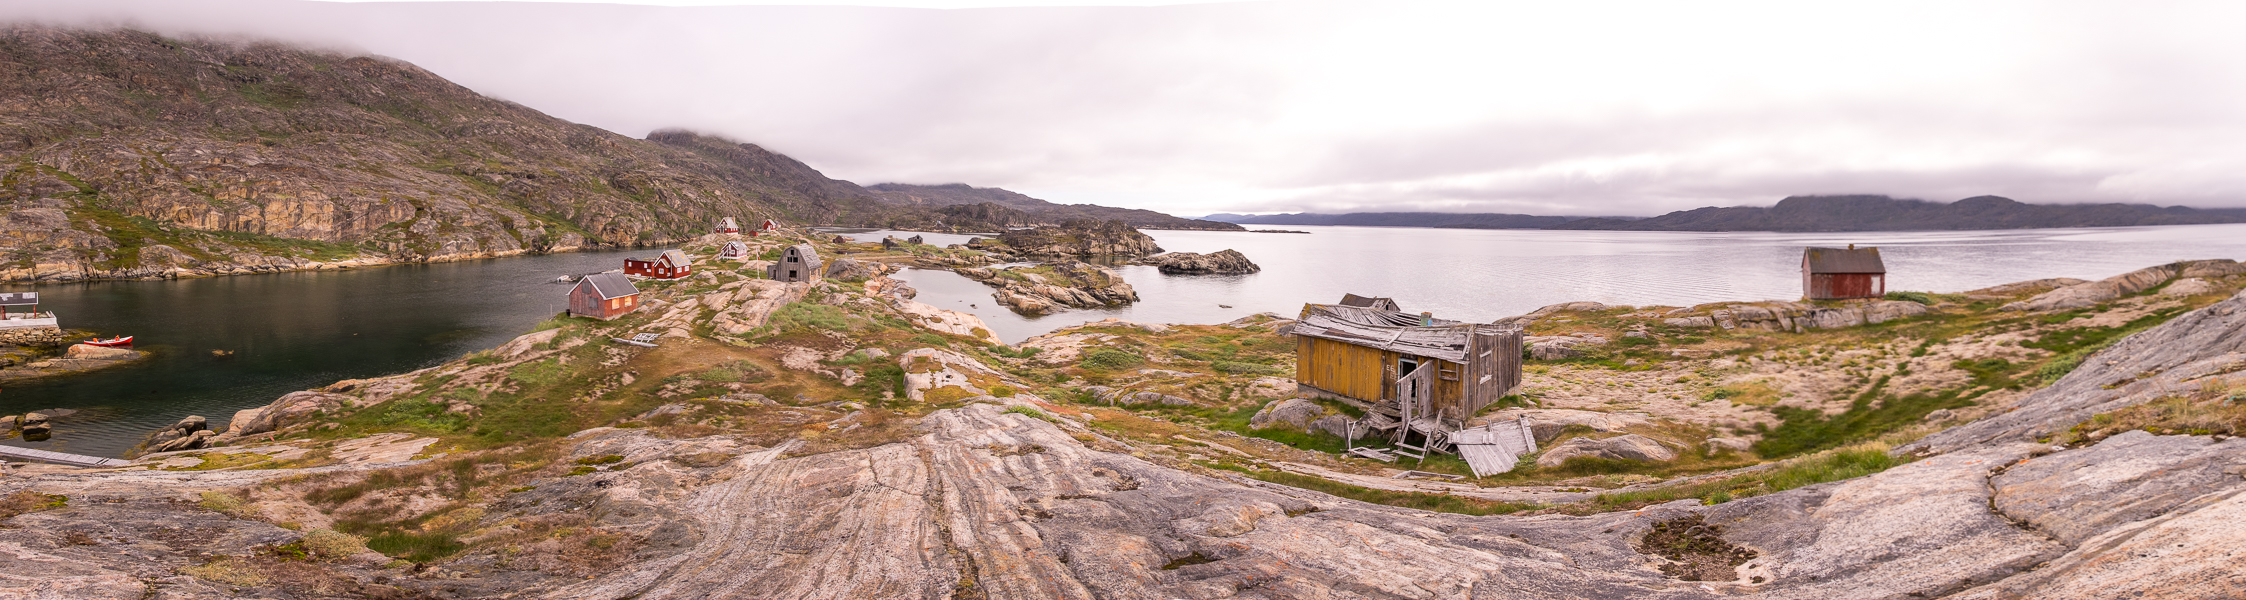 Panorama over Assaqutaq from one of the highest points on the island - Sisimiut - West Greenland